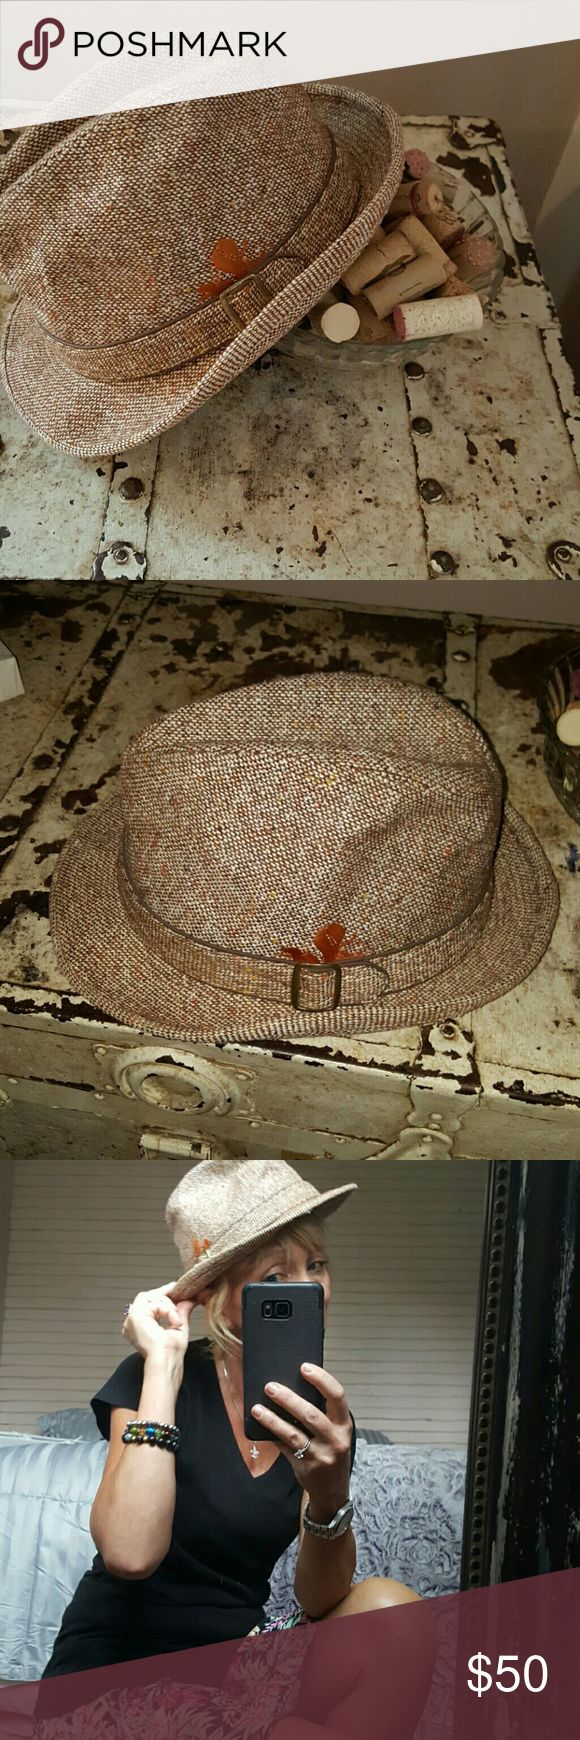 Fedora  hat 👒 Sale! Great bargain! THIS  years hot trend for women and men. This is a men's Fedora brand new tweed Fedora hat. Either or for women or men. Great gift! Dobbs Accessories Hats